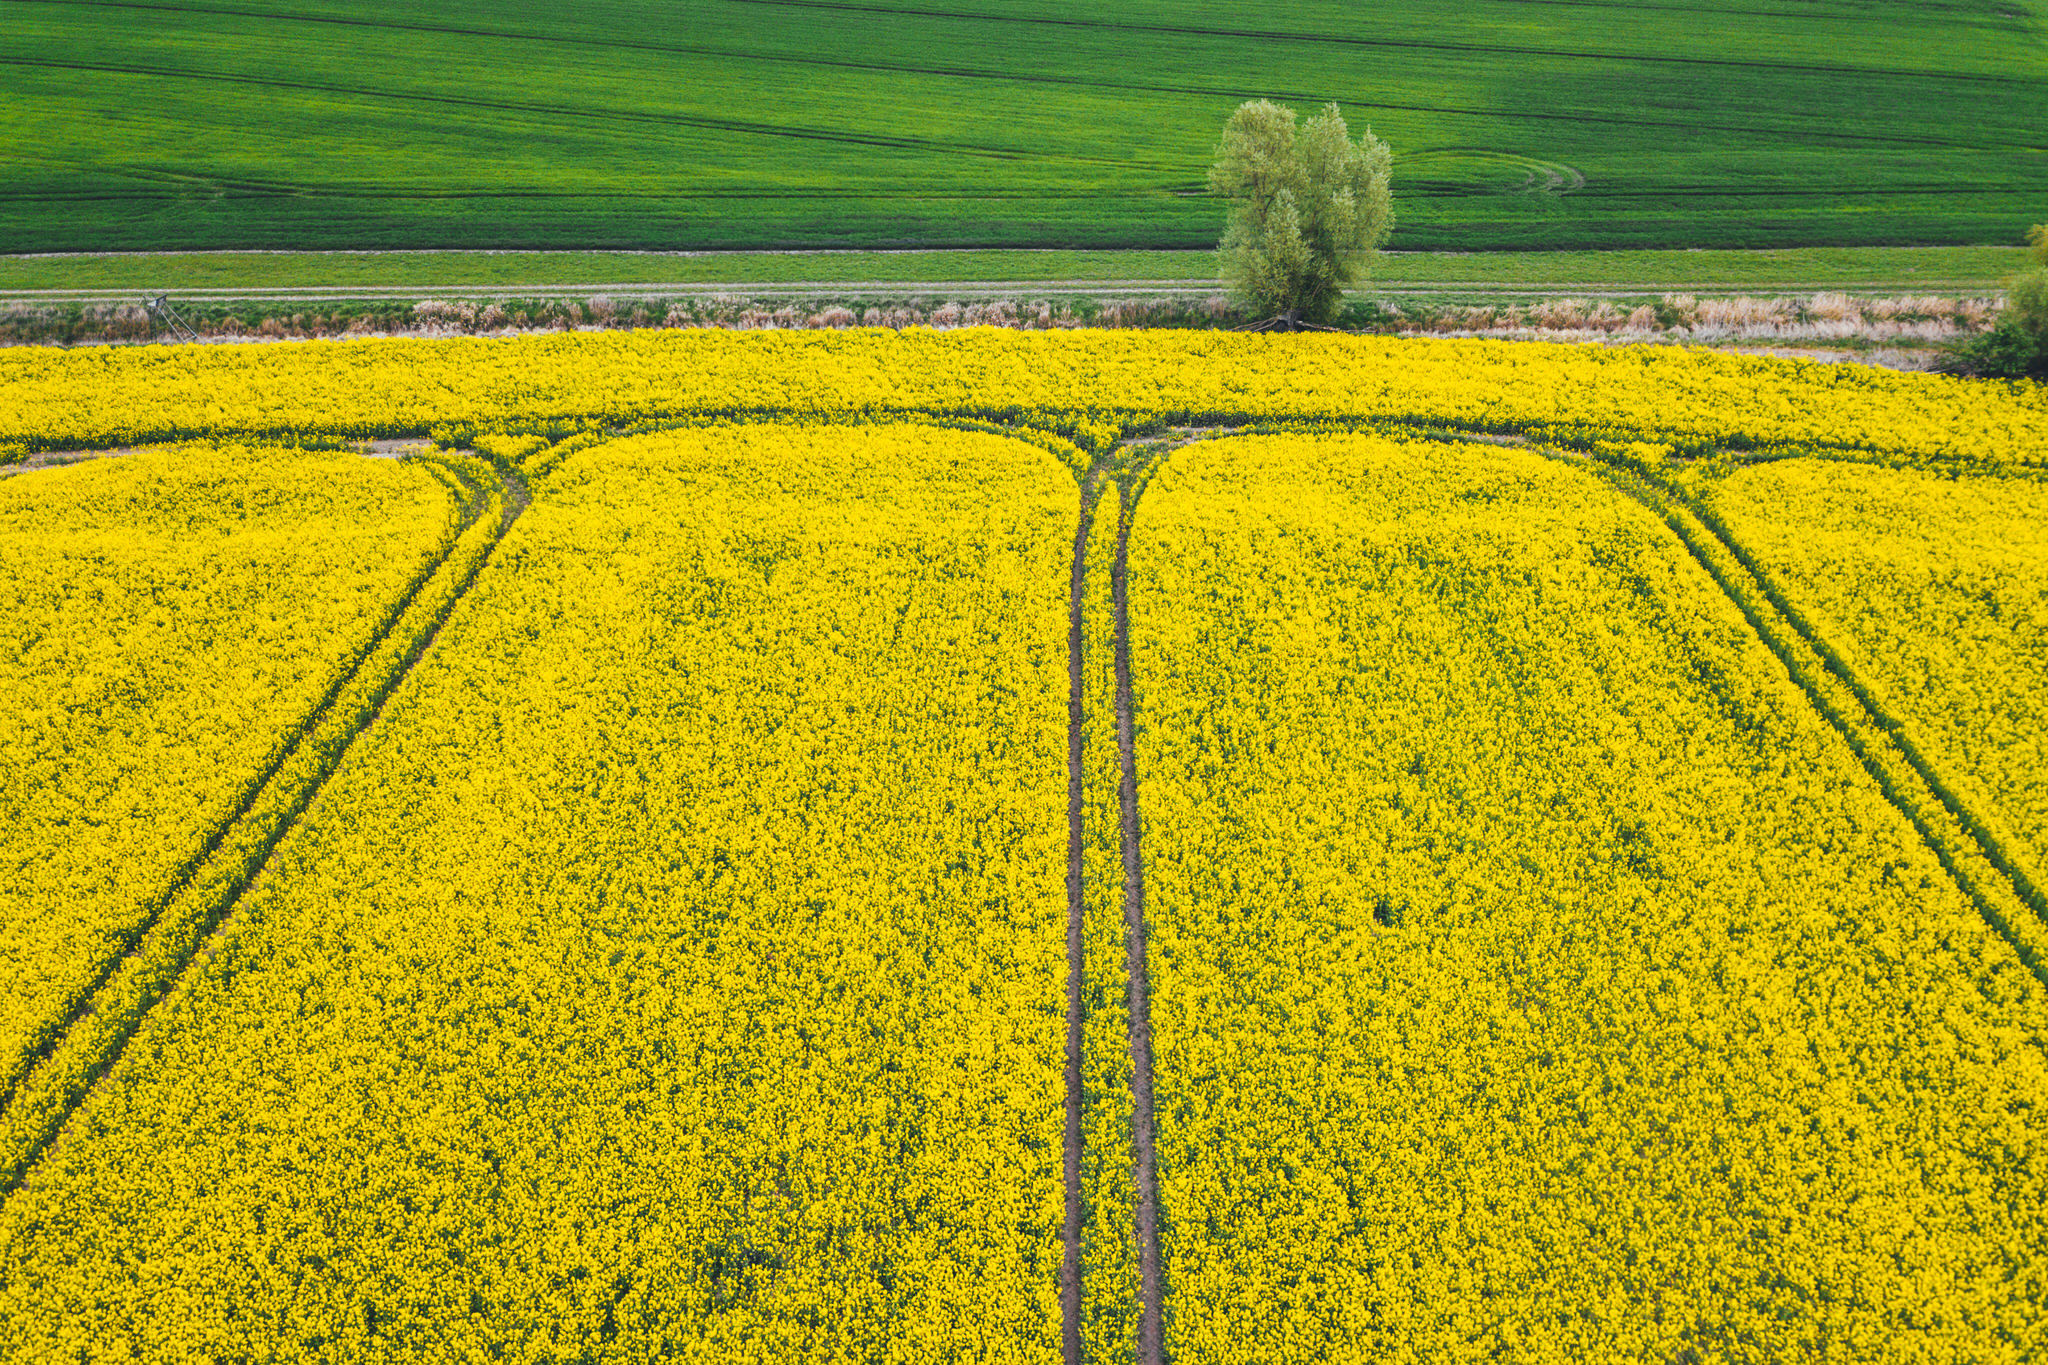 Abstract landscape view of rapeseed flowers